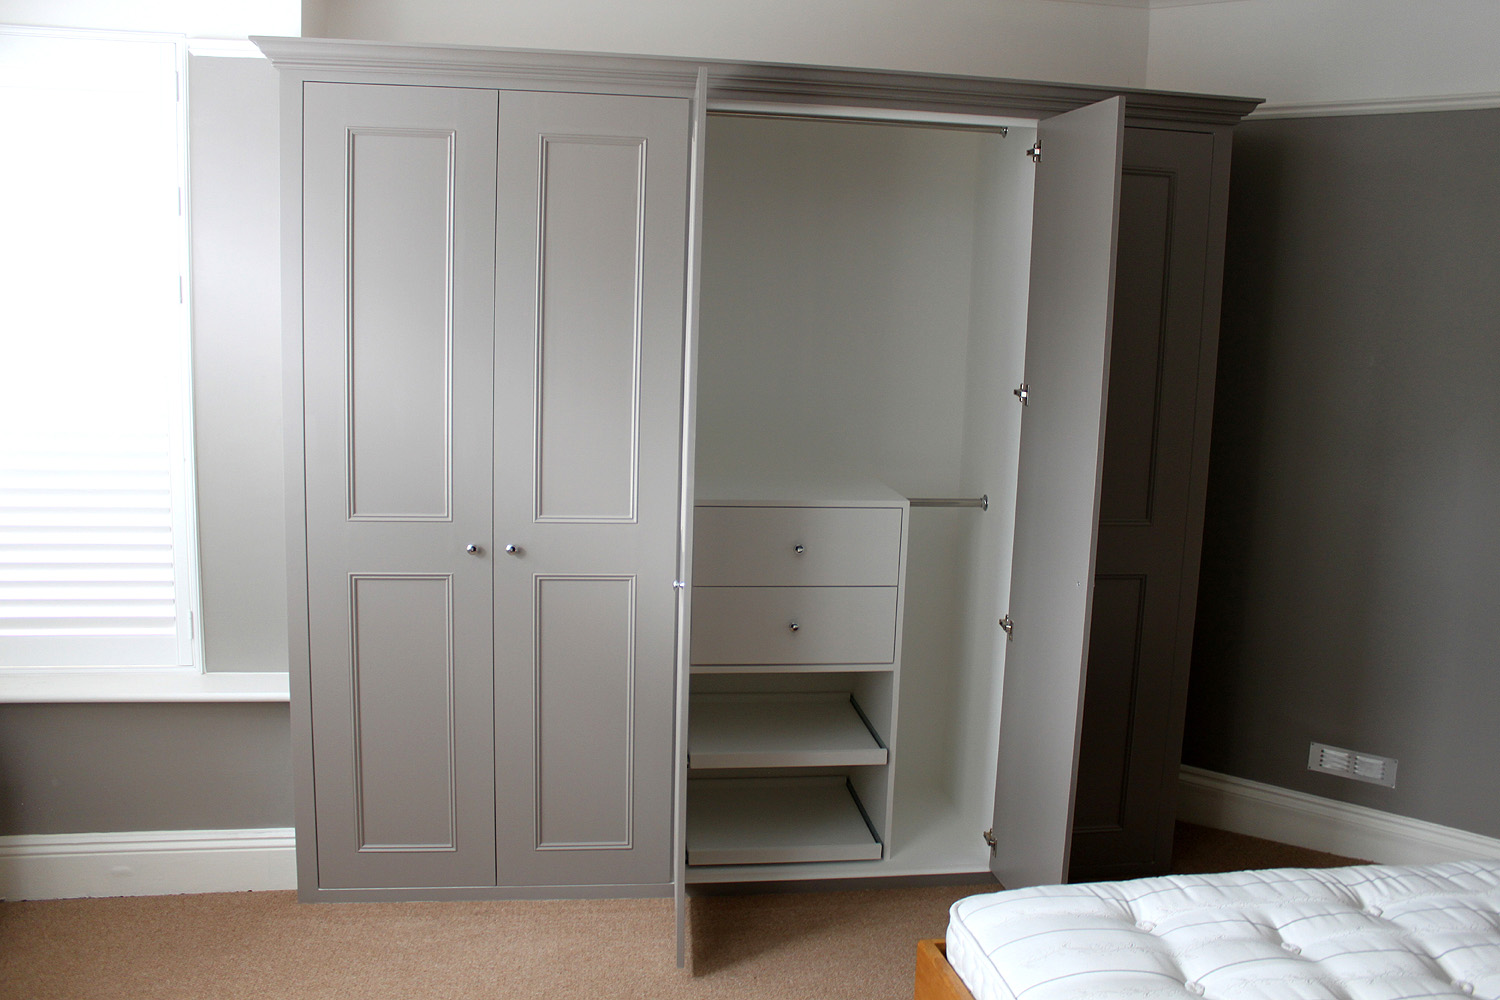 Gypsy Fitted Wardrobes Prices 85 In Nice Home Decoration Ideas with Fitted  Wardrobes Prices